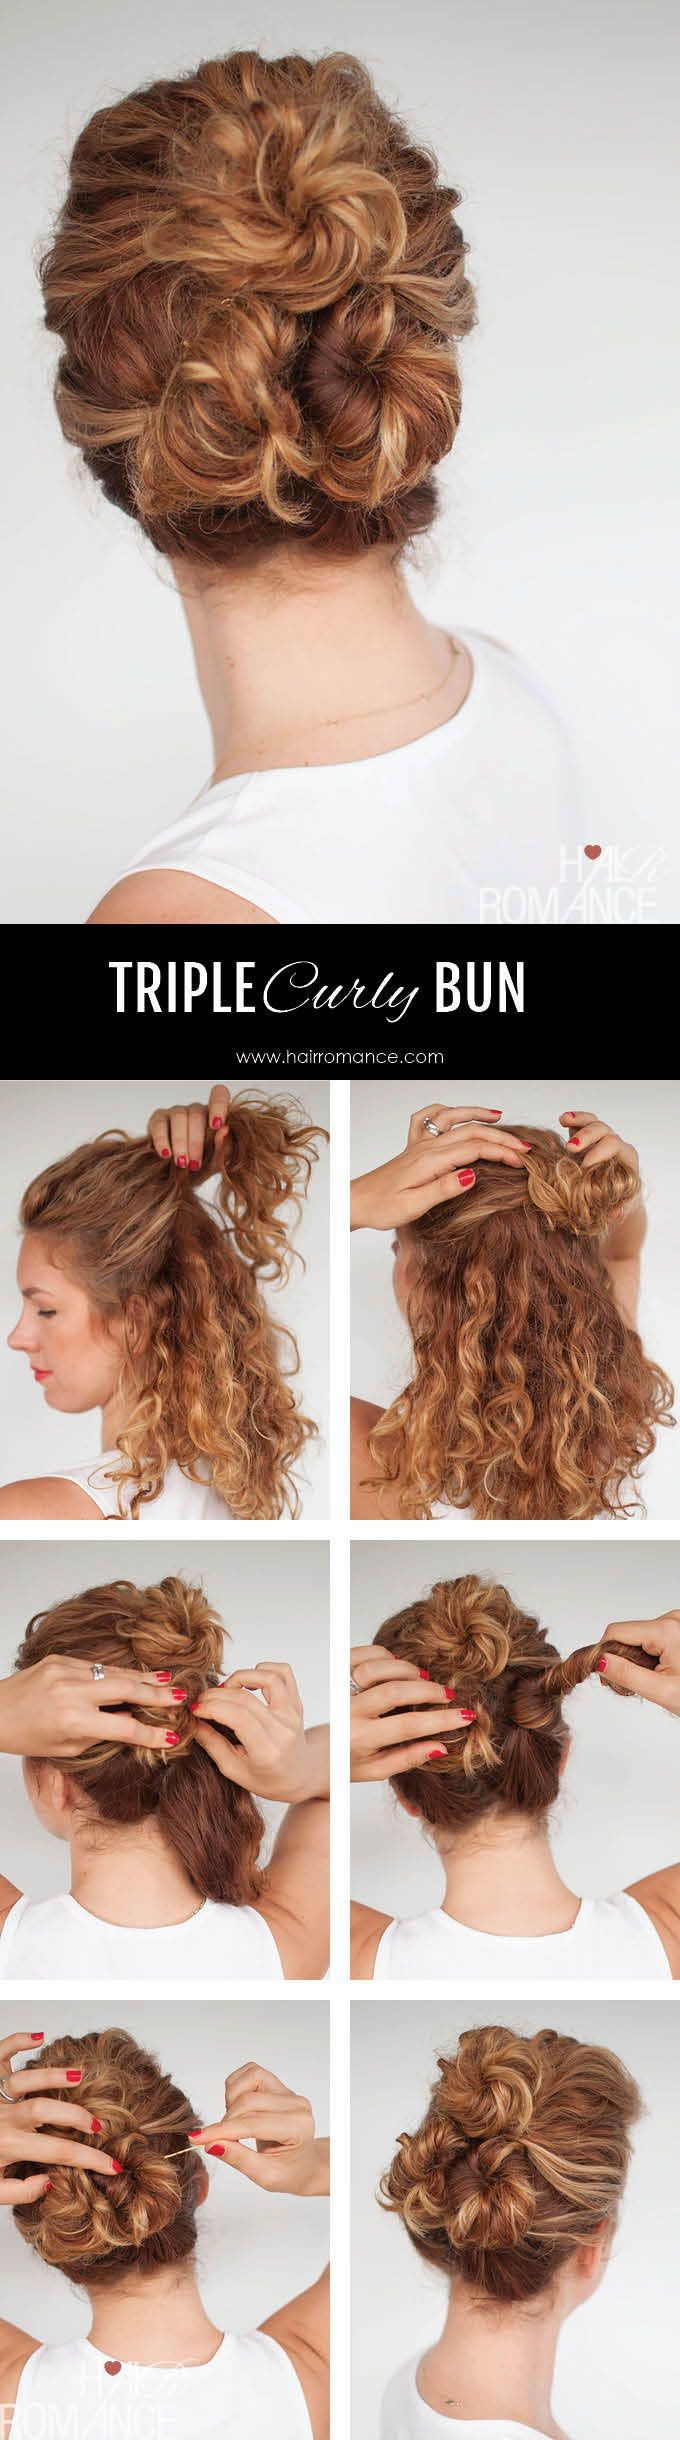 cute and sexy hairstyles for short curly hair u donut miss